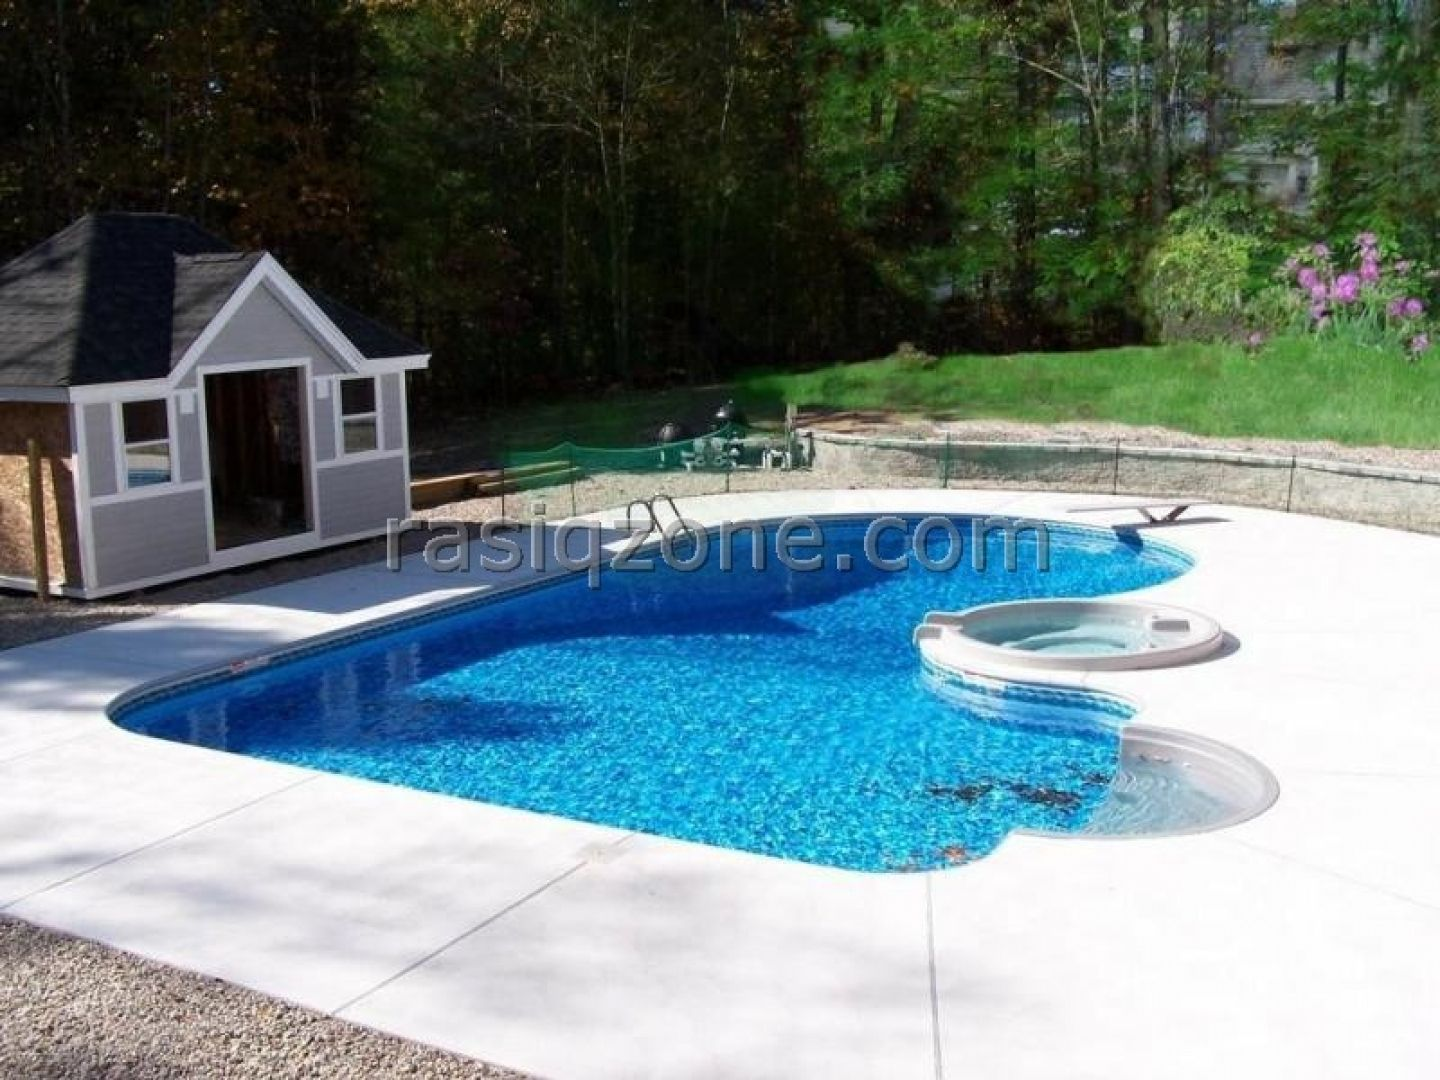 Inground pools kids will love pool designs backyard for Swimming pool ideas for backyard